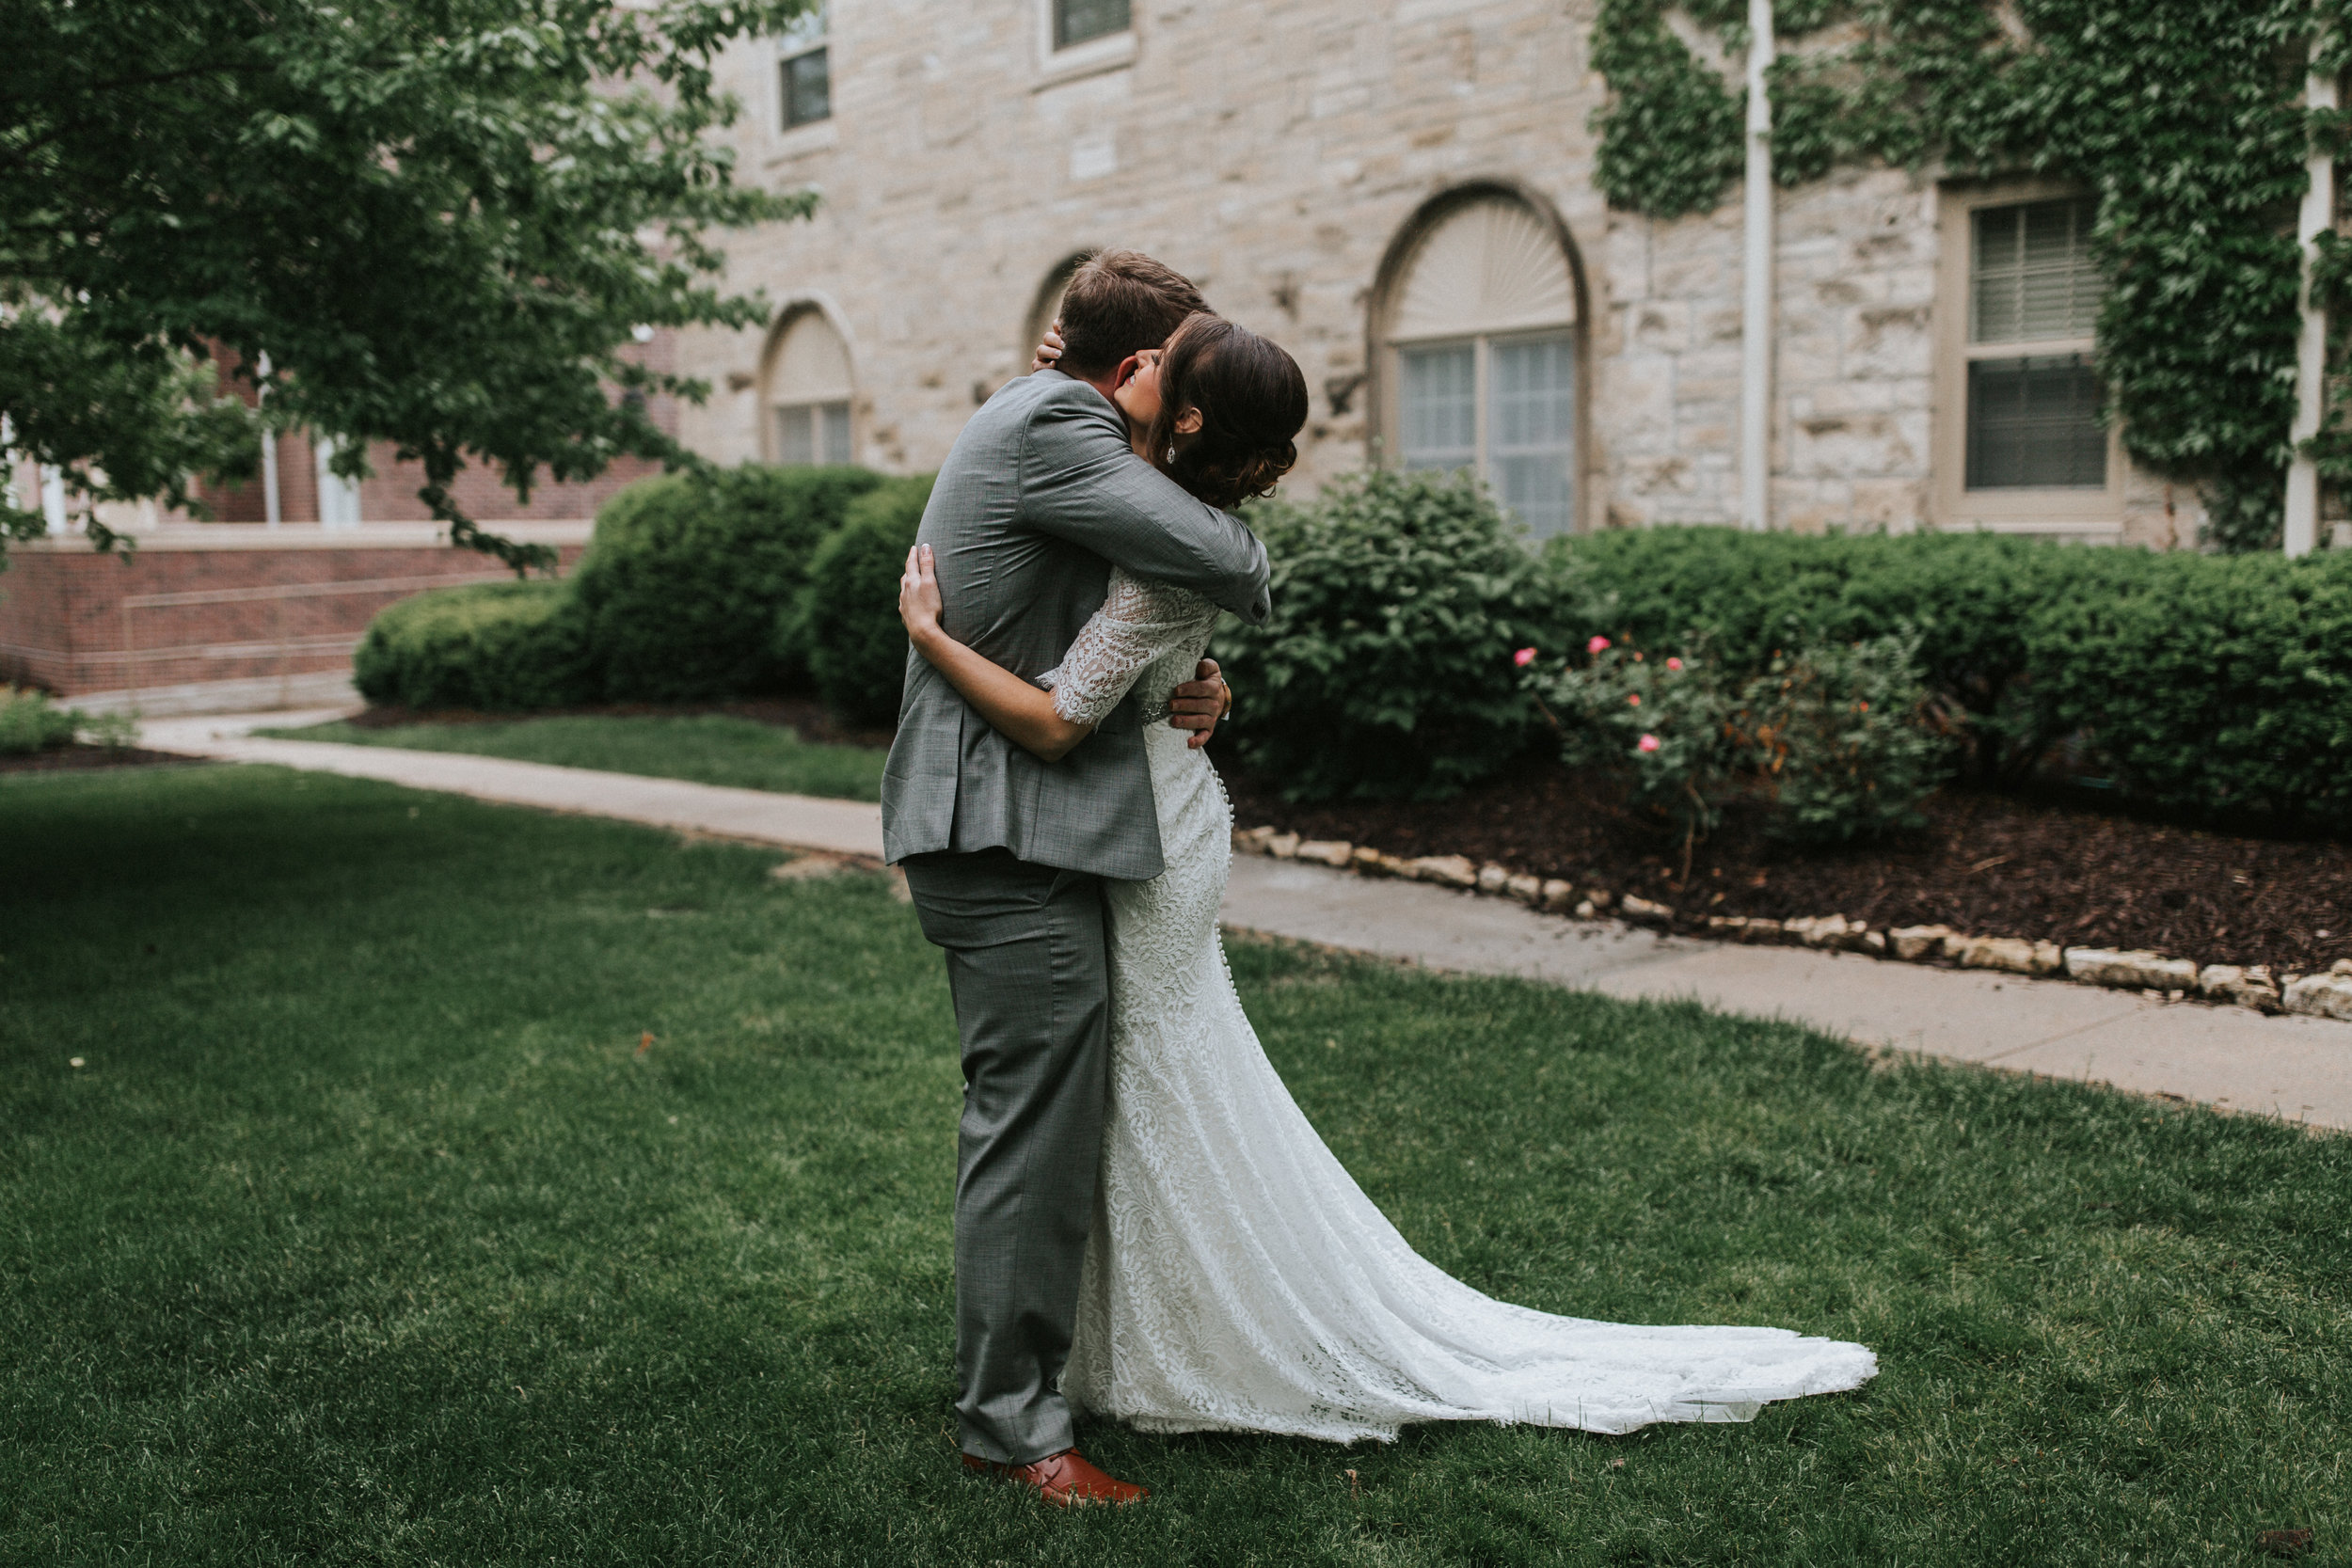 Emily + Brent | Rainy Midwestern Wedding Day